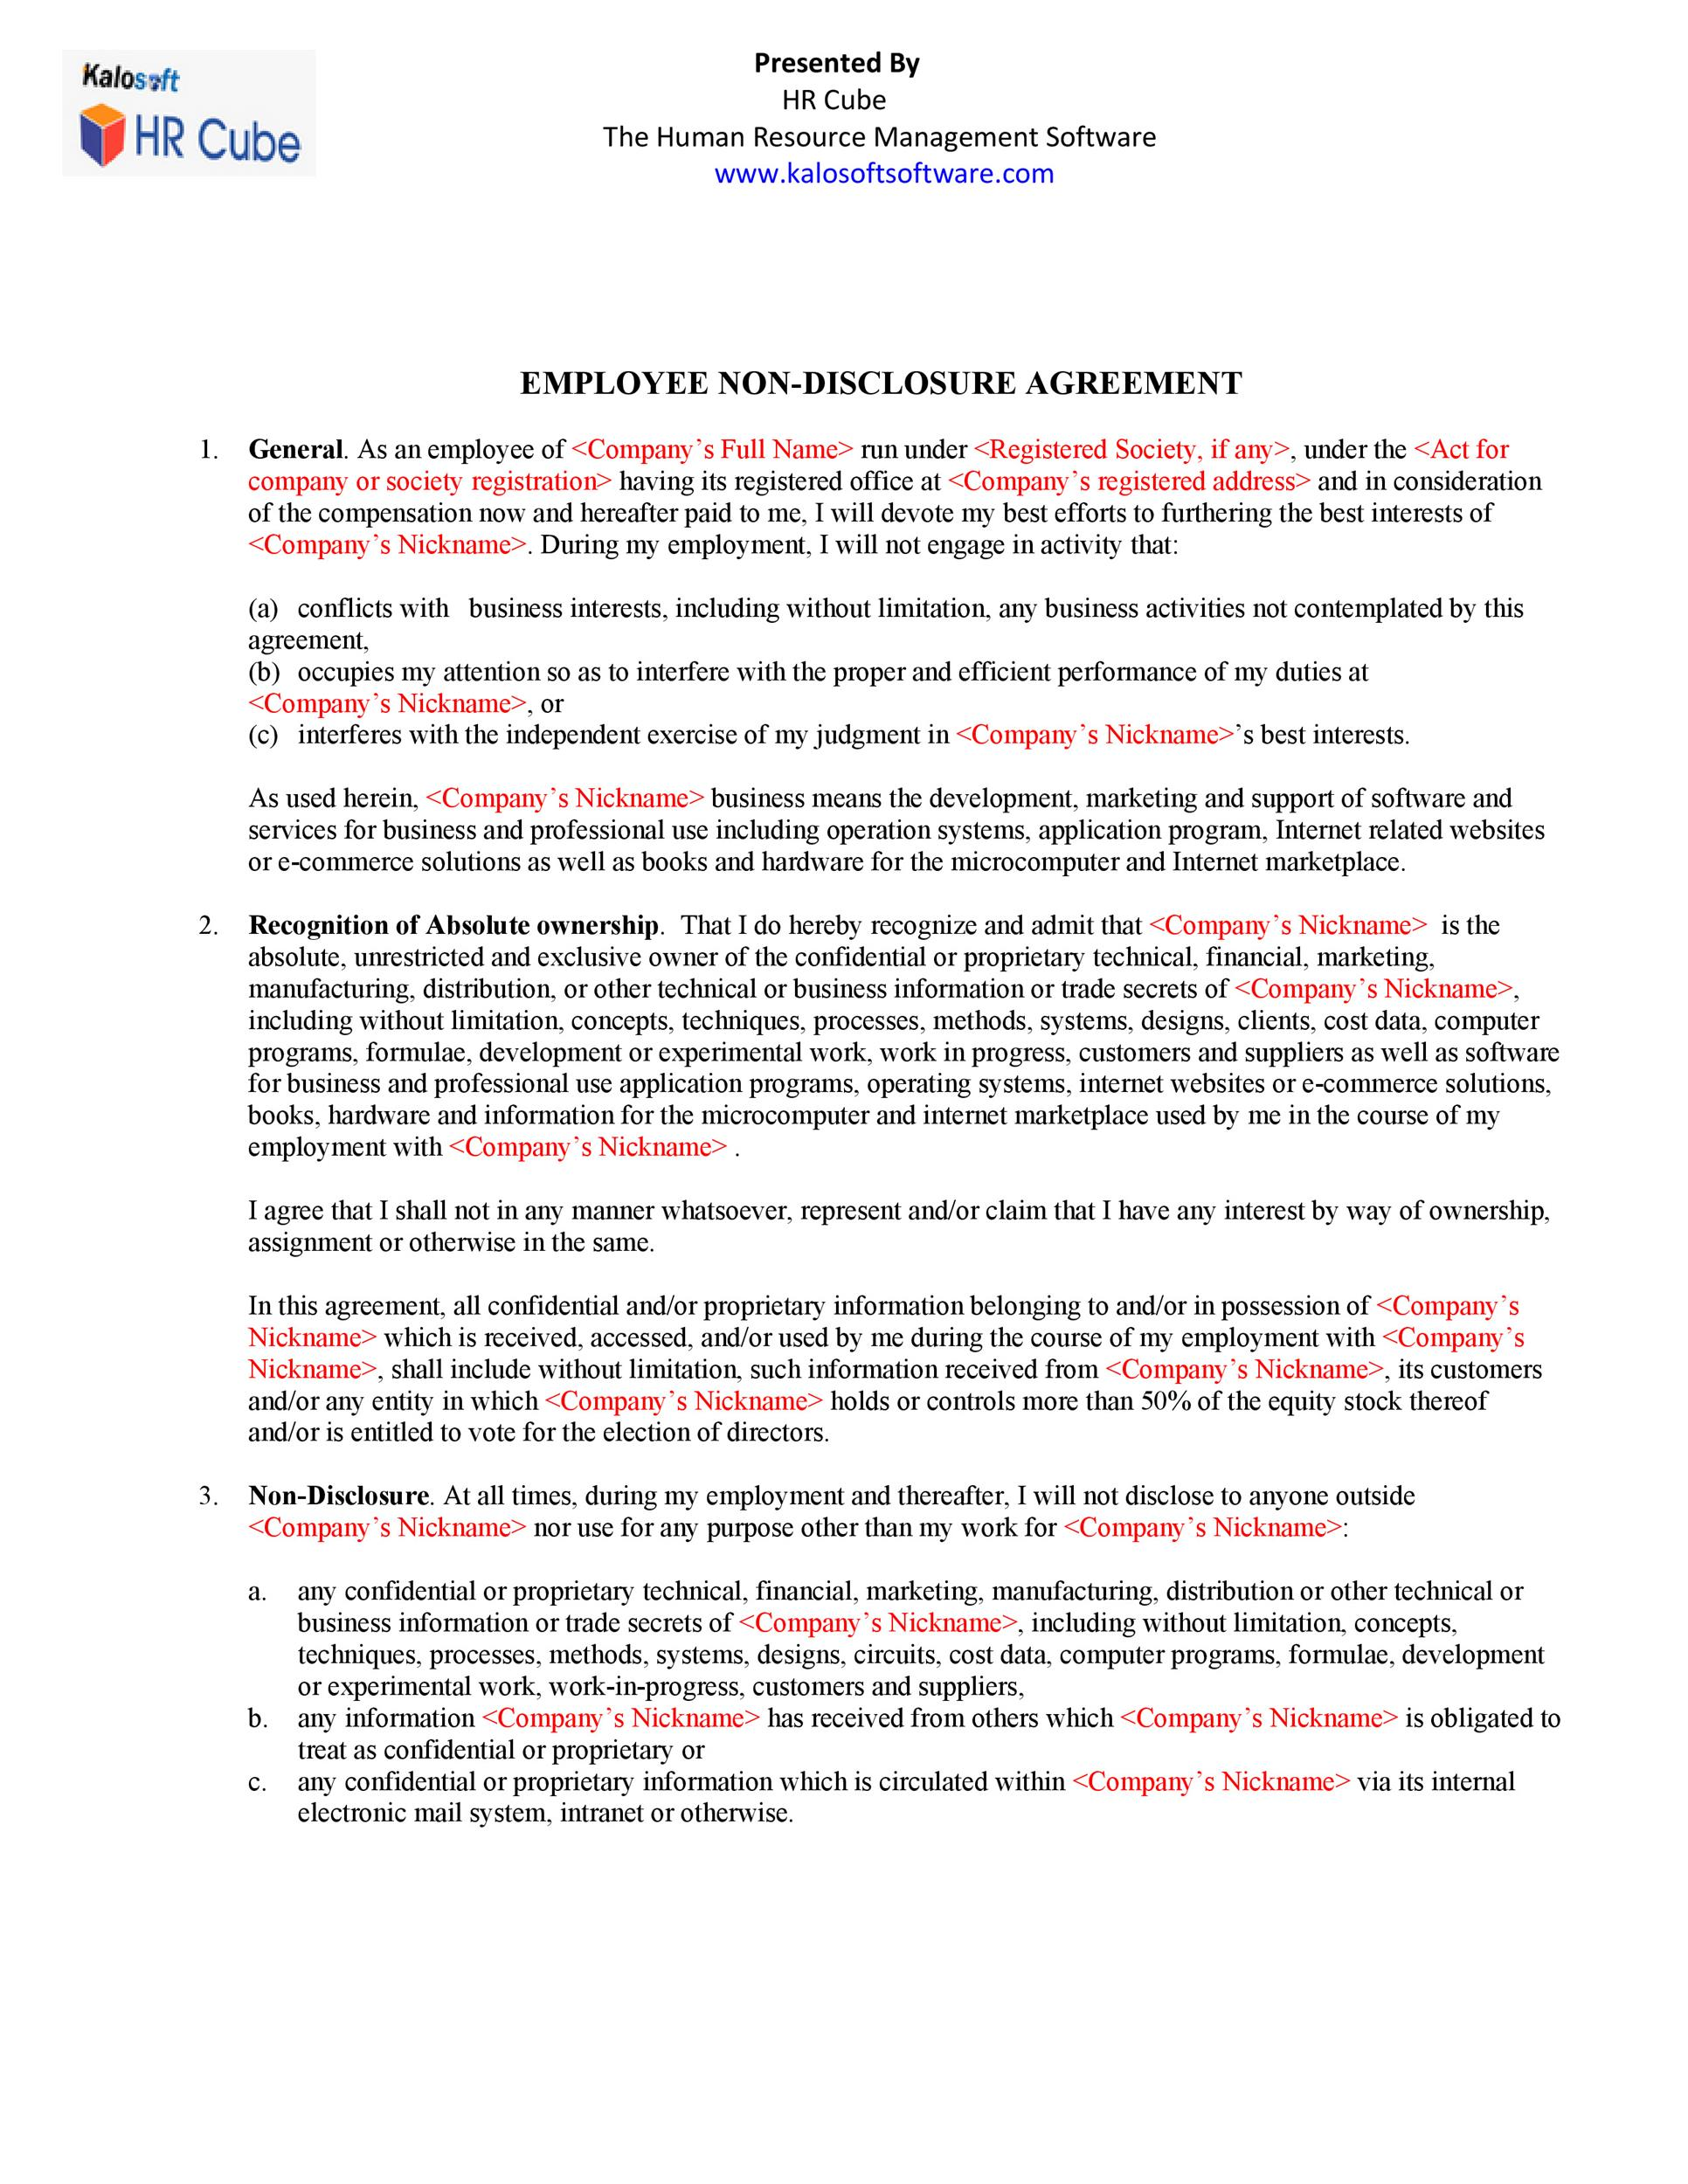 free non disclosure agreement template 23